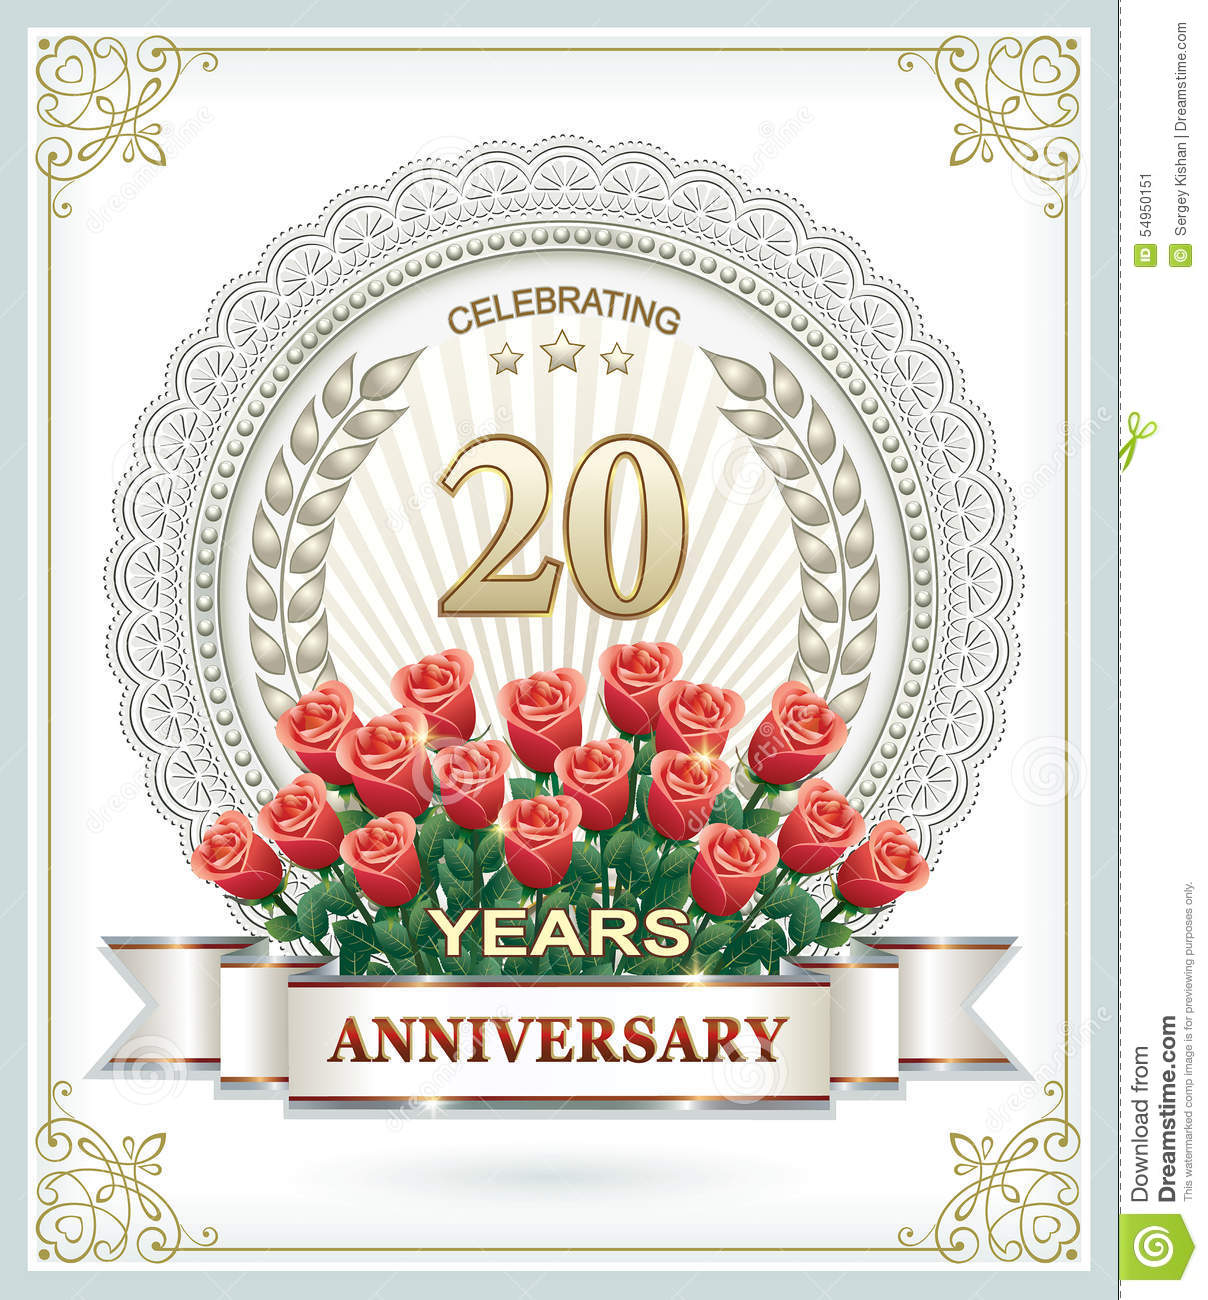 happy birthday 20 years with roses stock vector illustration of background banner 54950151. Black Bedroom Furniture Sets. Home Design Ideas